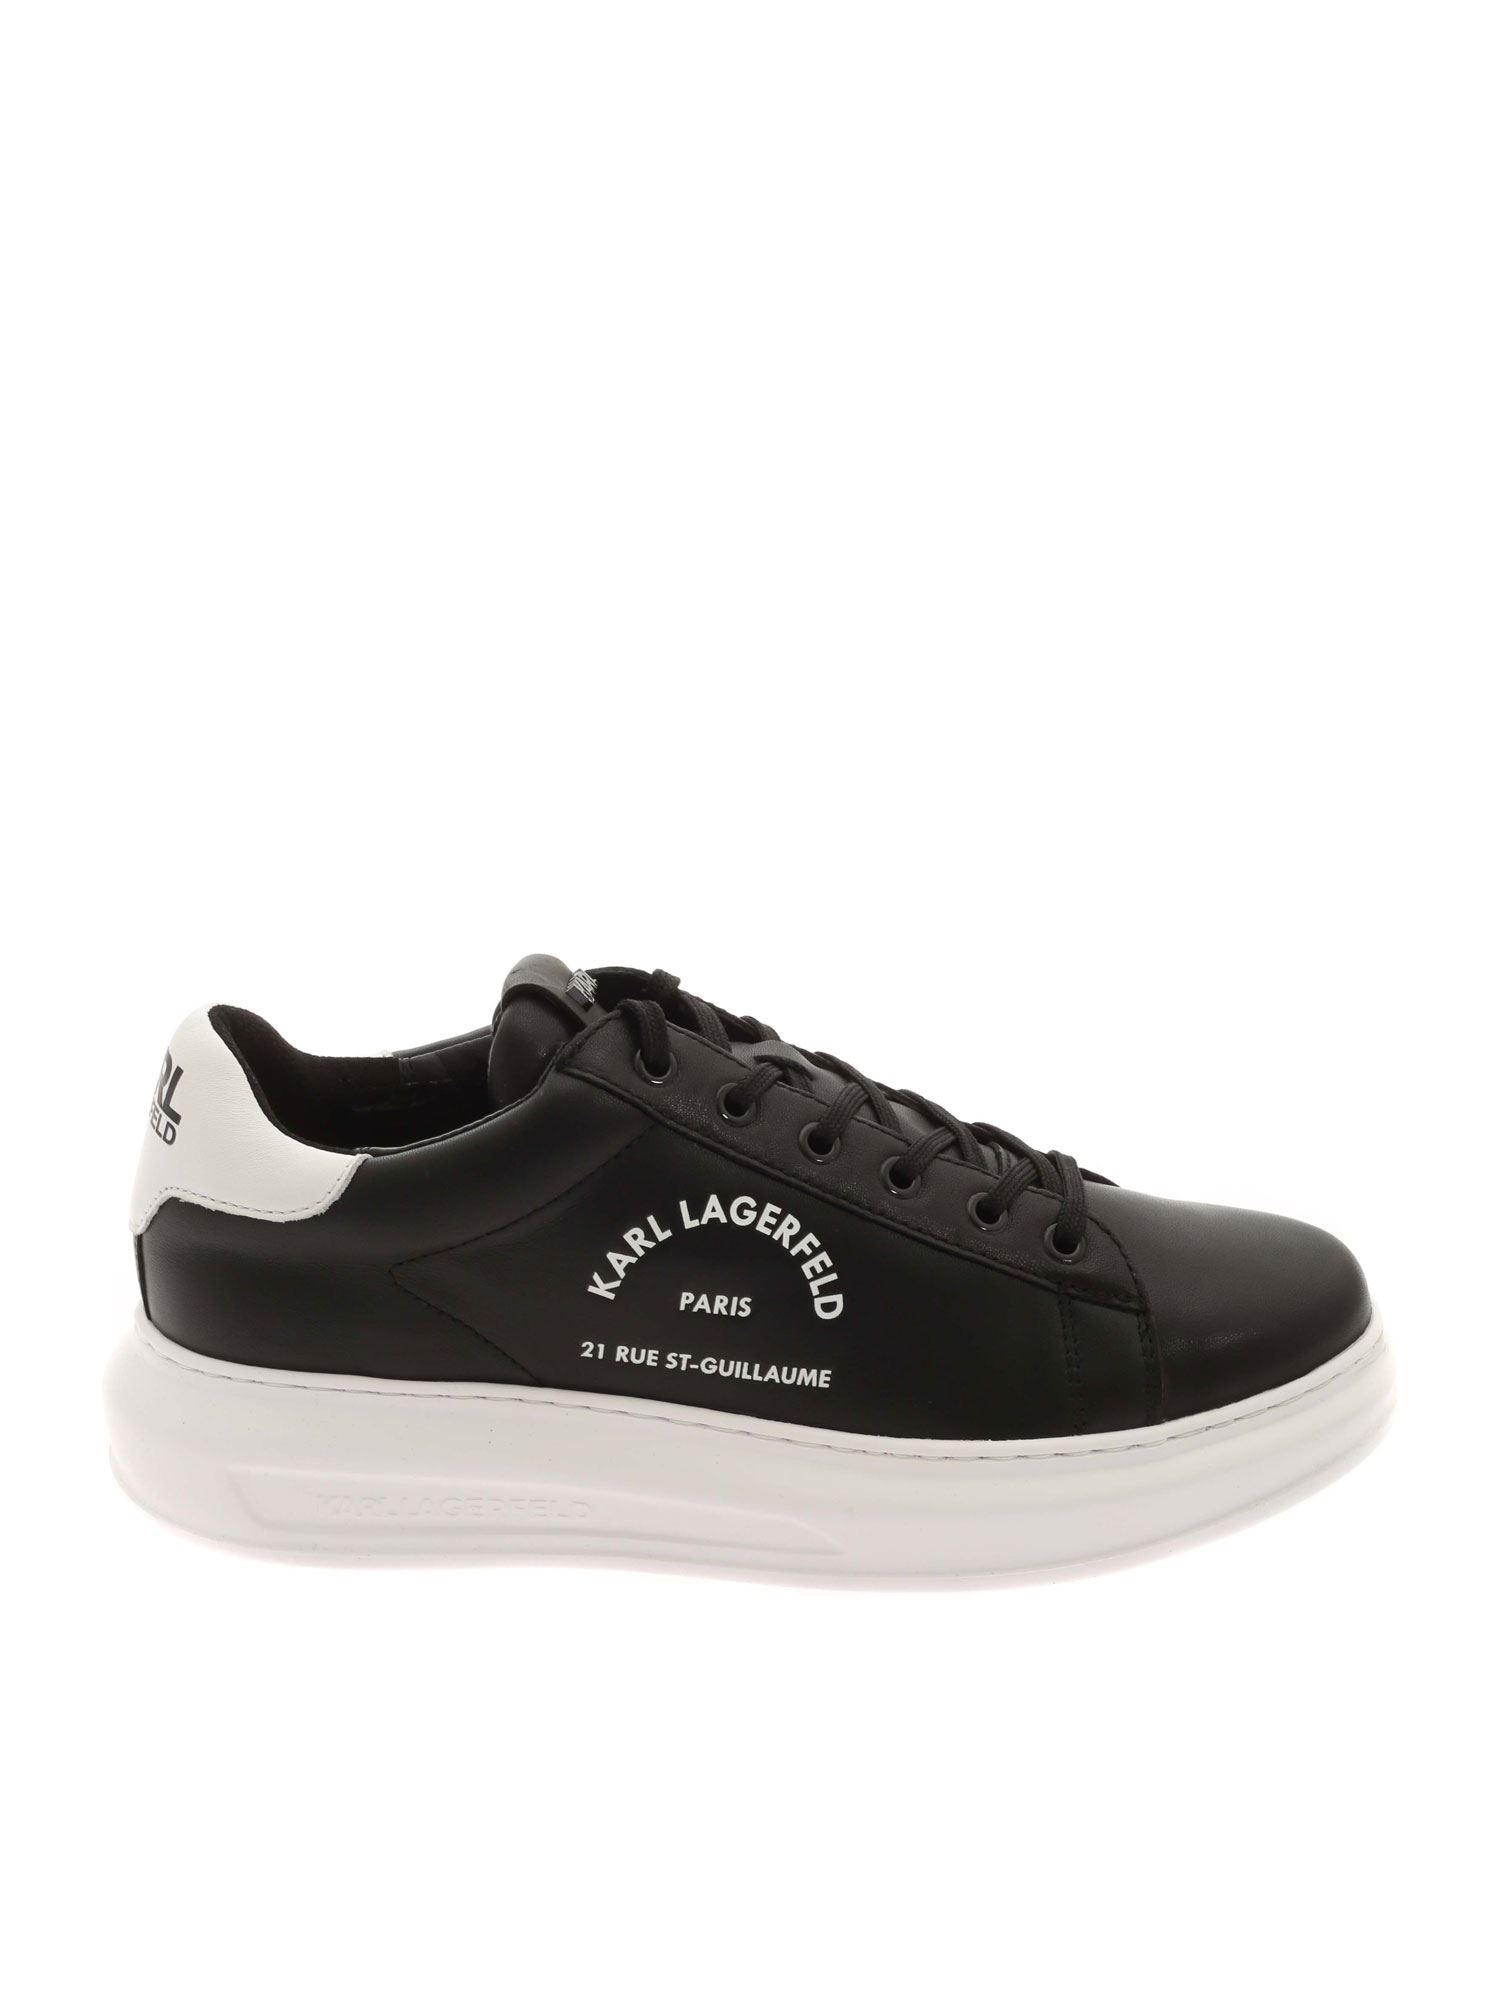 Karl Lagerfeld KAPRI SNEAKERS IN BLACK